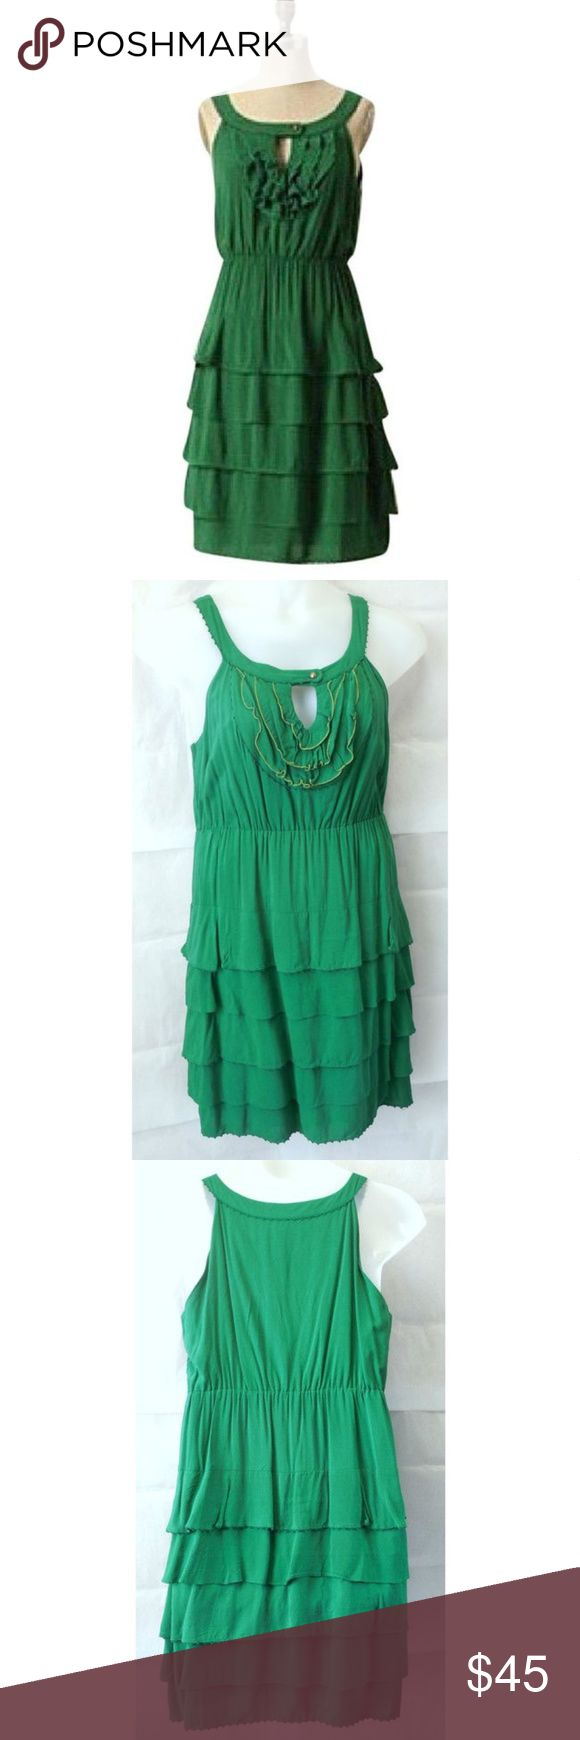 """Maeve GATHERED TOGETHER Tiered Rayon Lovely """"Gathered Together"""" dress from Maeve in emerald green rayon. Machine wash. Features:  Sleeveless ruffled keyhole neckline elasticized waist tiered skirt fully lined in green cotton Measurements:  Size 14 Bust 41"""" Waist 30"""" Hips 40"""" Length 39"""" shoulder to hem  All Measurements Are Approximate  Measurements Taken Flat & Unstretched Anthropologie Dresses Midi"""